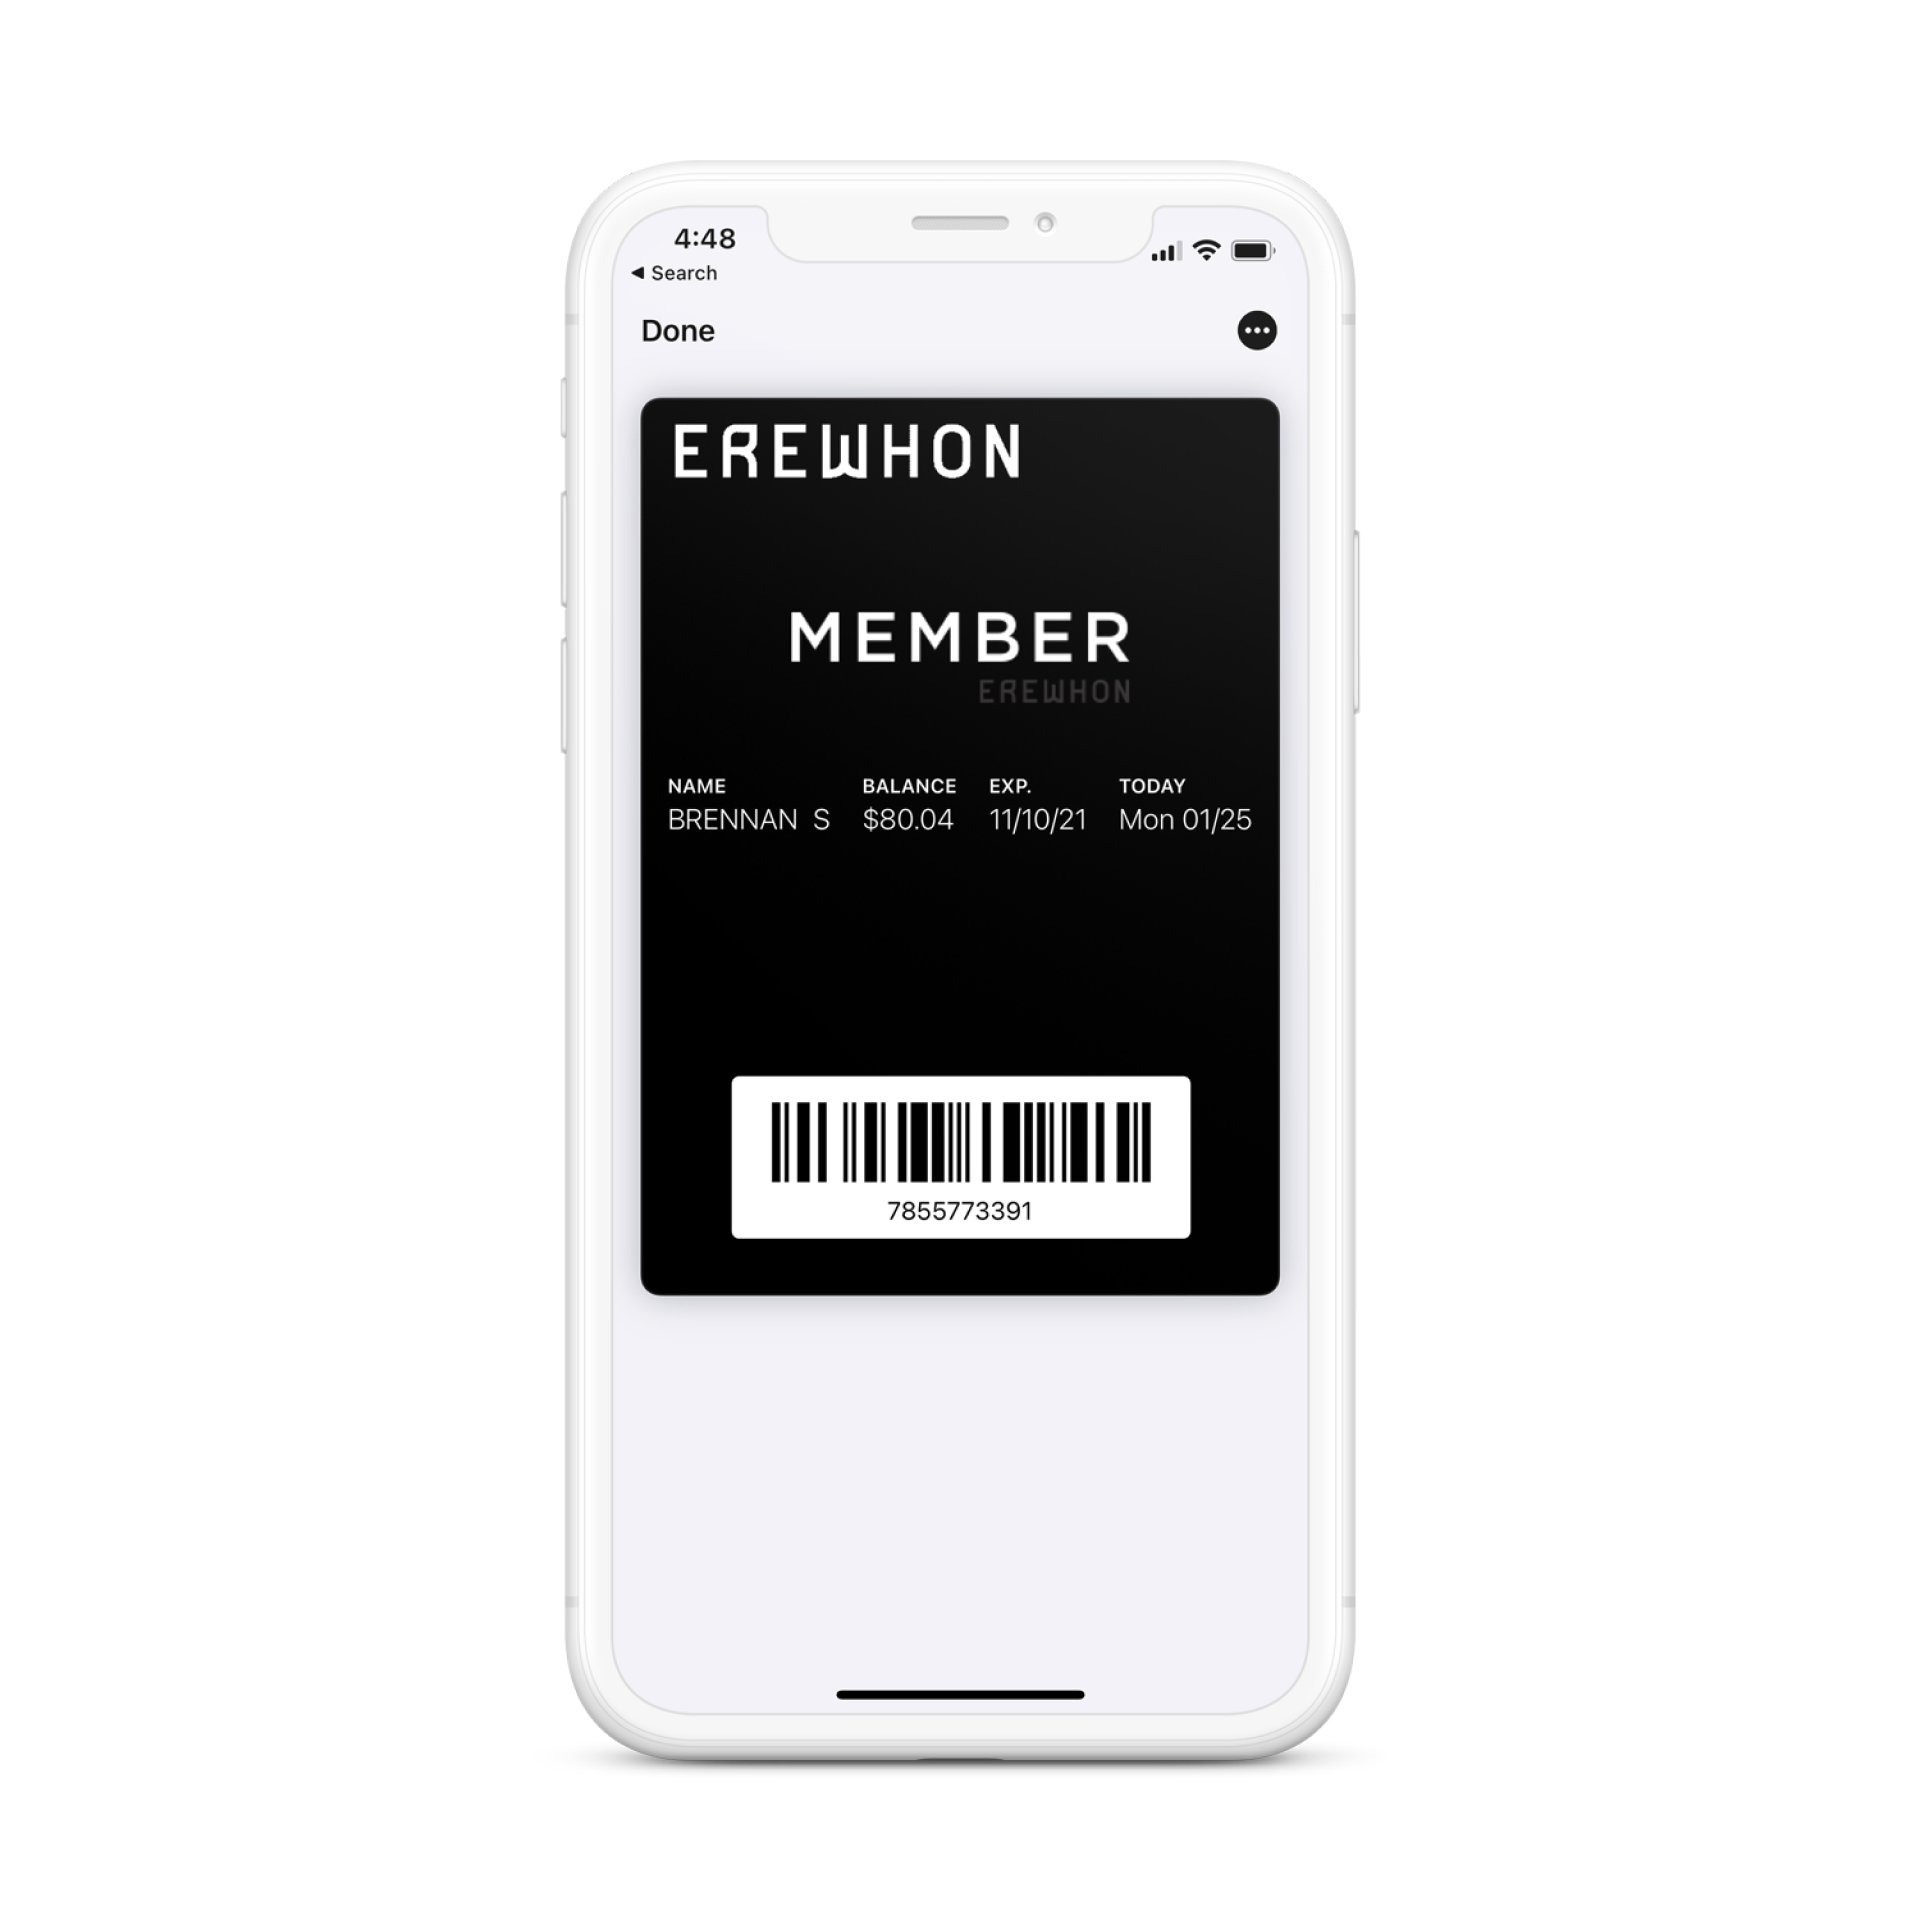 Mobile phone mock up with Erewhon member card